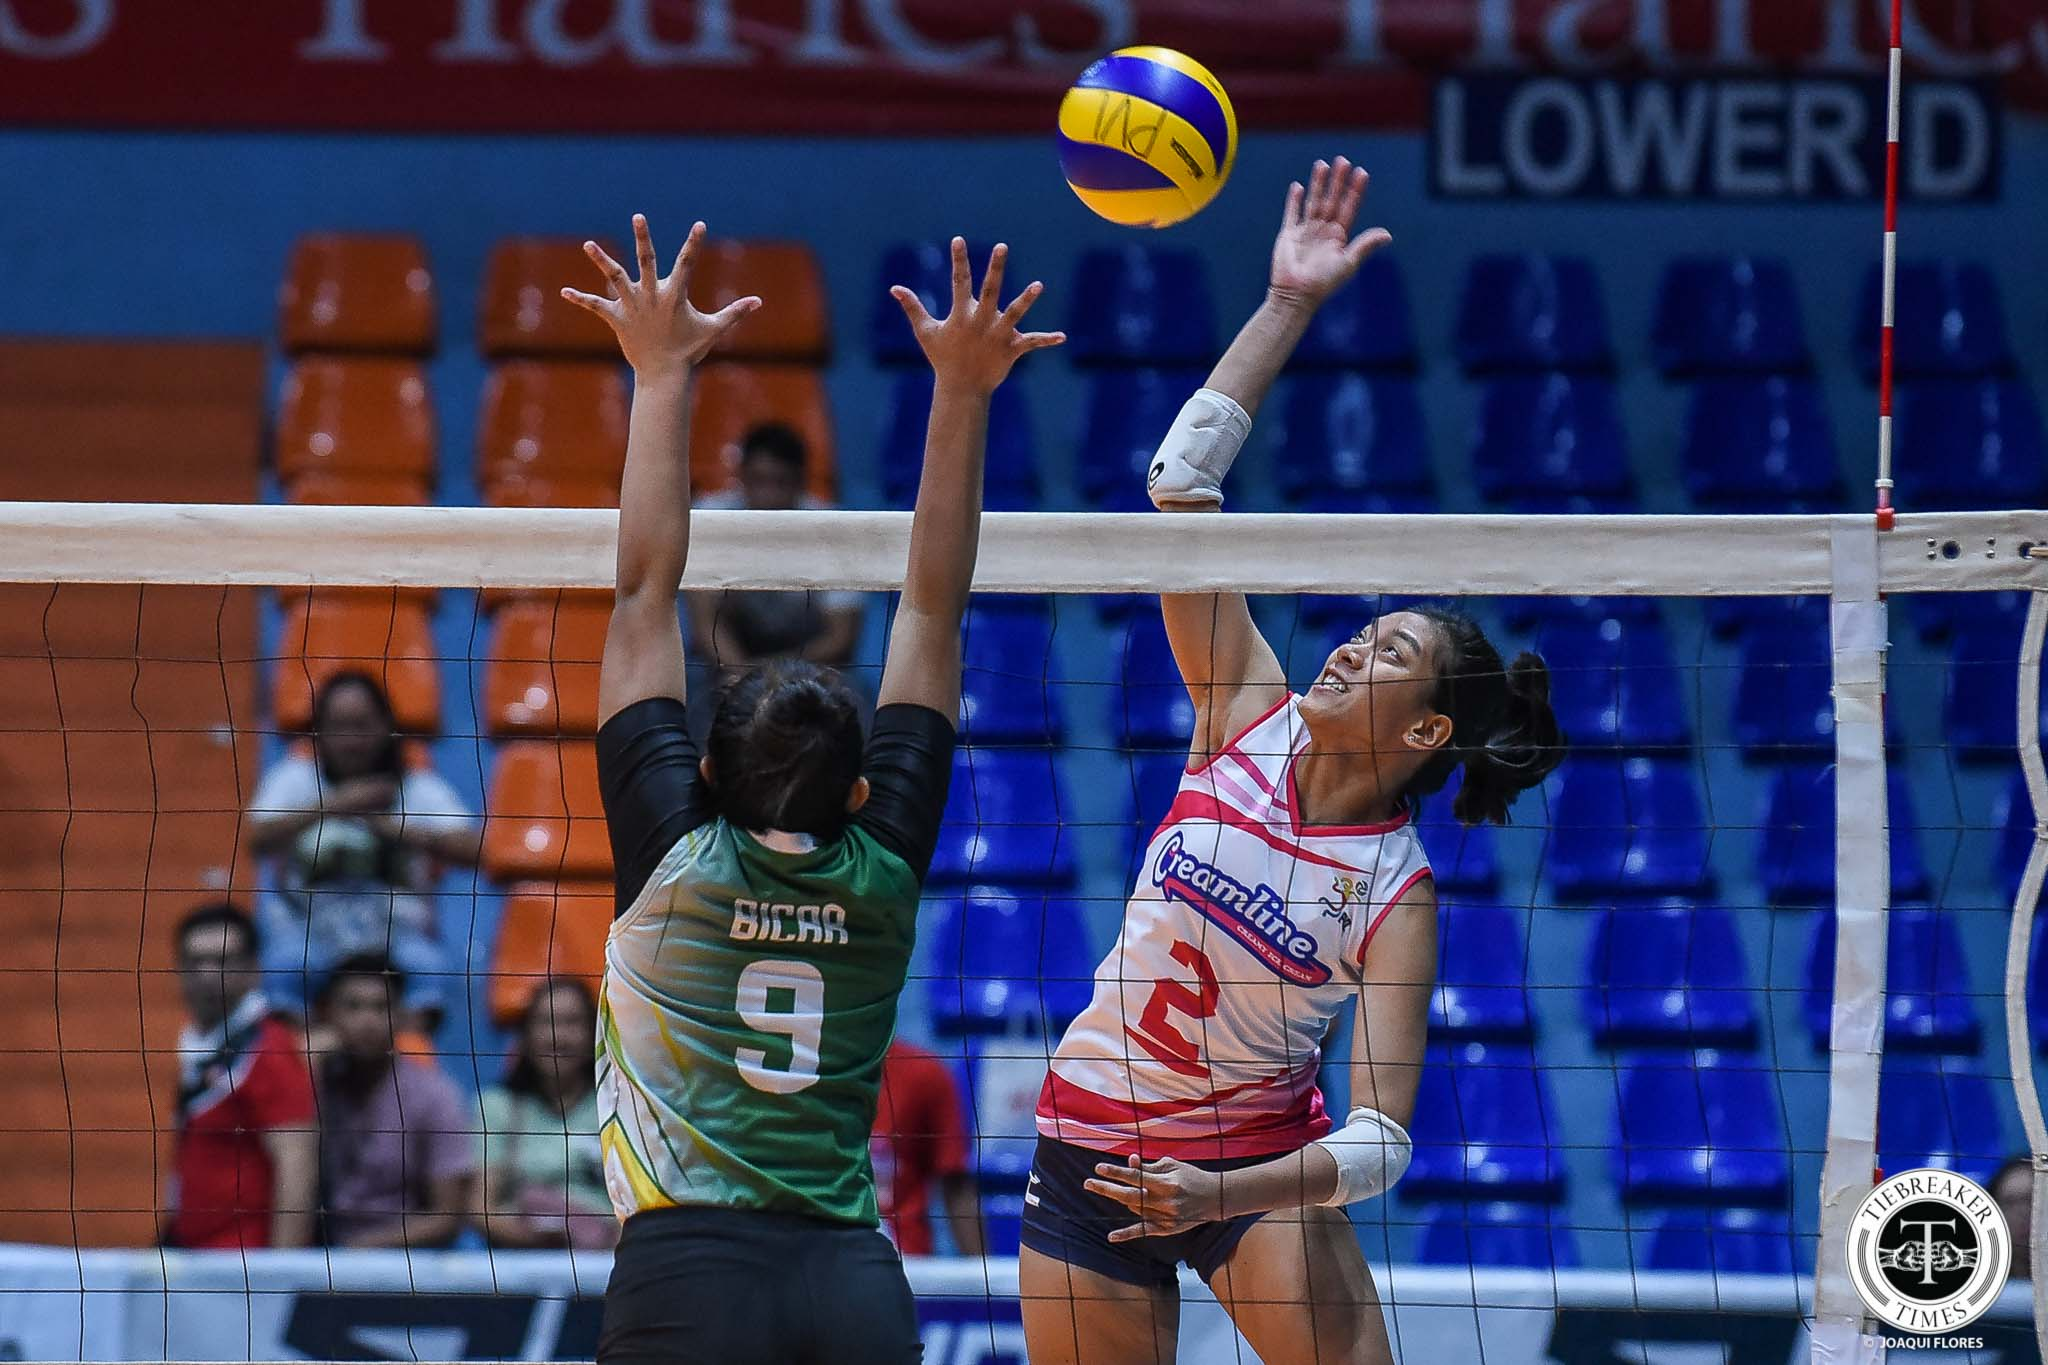 Tiebreaker Times Alyssa Valdez returns as Creamline vents ire on Pacific Town-Army News PVL Volleyball  Pacific Town-Army Lady Troopers Michele Gumabao Kyla Atienza Kungfu Reyes Jia Morado Jenelle Jordan Ed Ortega Creamline Cool Smashers Alyssa Valdez Aleoscar Blanco 2019 PVL Season 2019 PVL Reinforced Conference